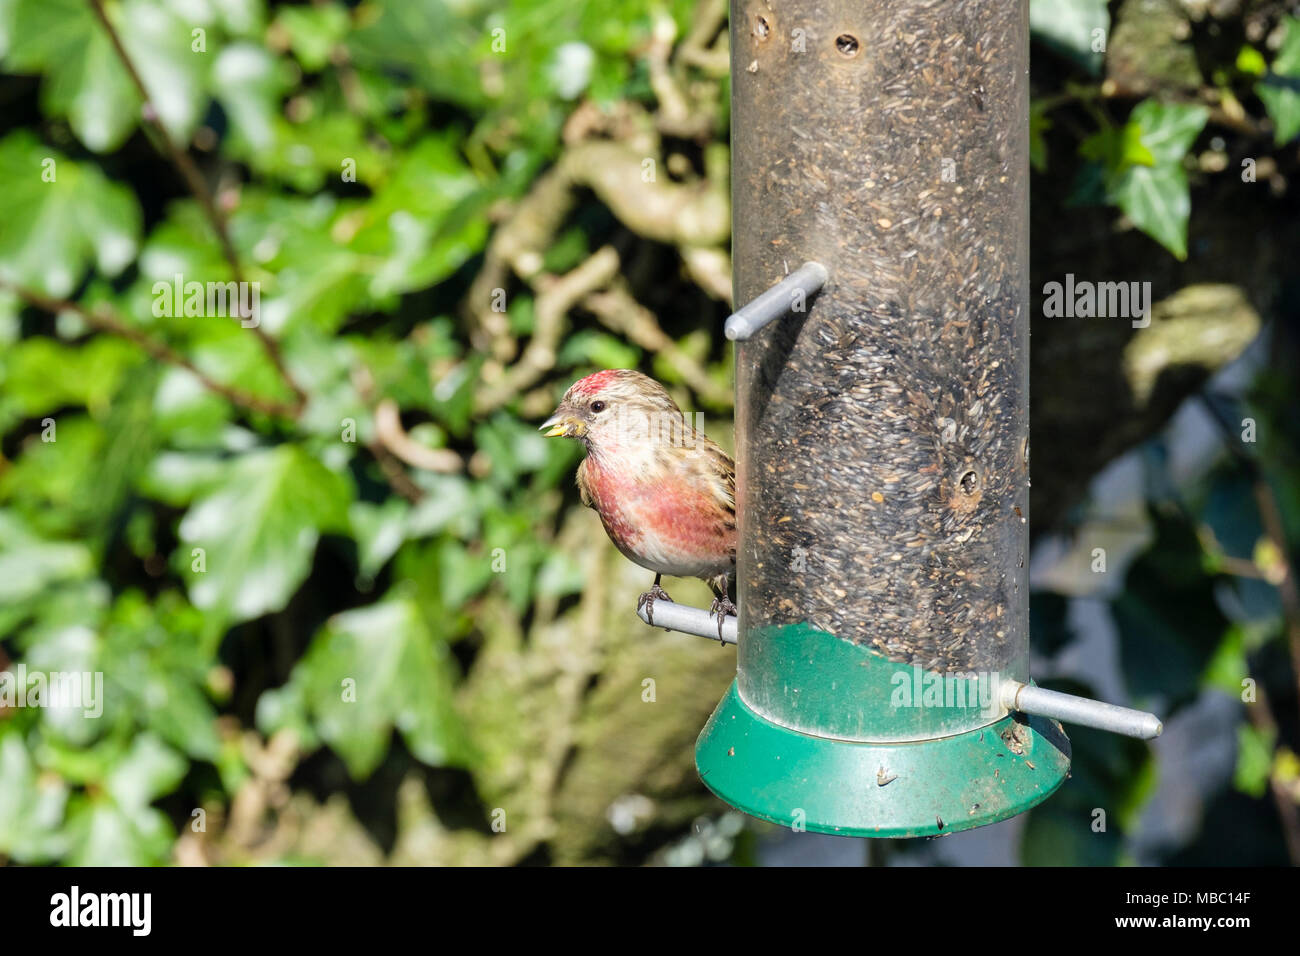 Colourful male Common Linnet (Carduelis cannabina) finch in spring plumage on a garden bird seed feeder in a hedgerow. Wales, UK, Britain - Stock Image